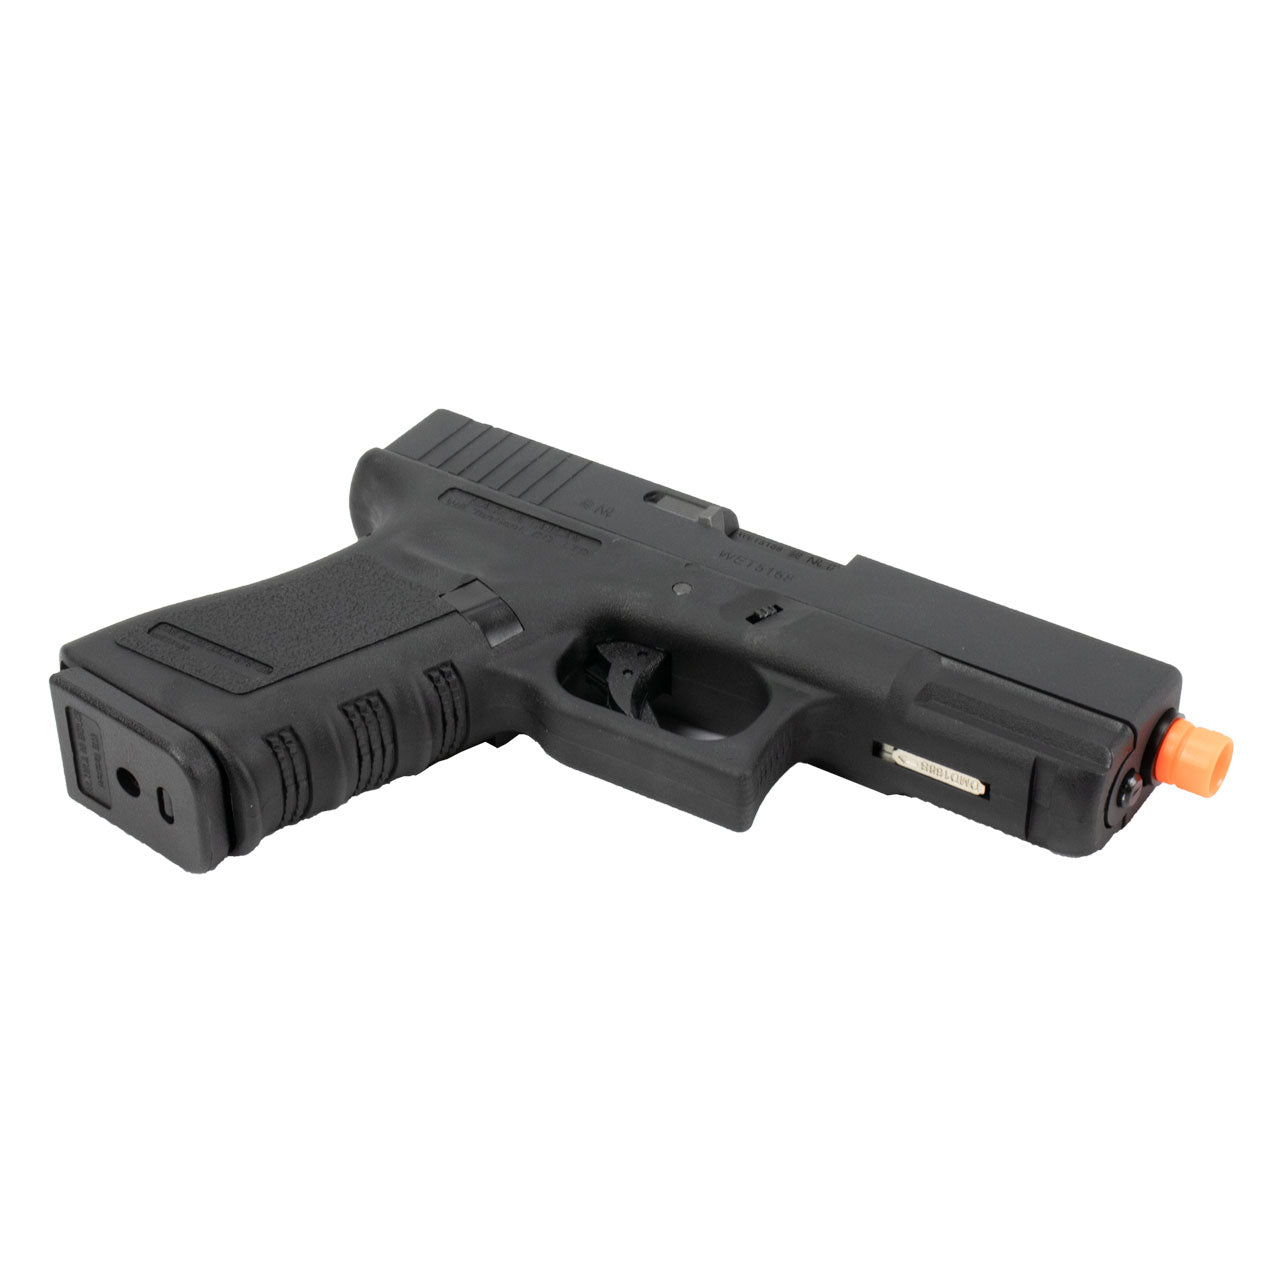 WE G-19 Gen 3 Gas Blowback Airsoft Pistol